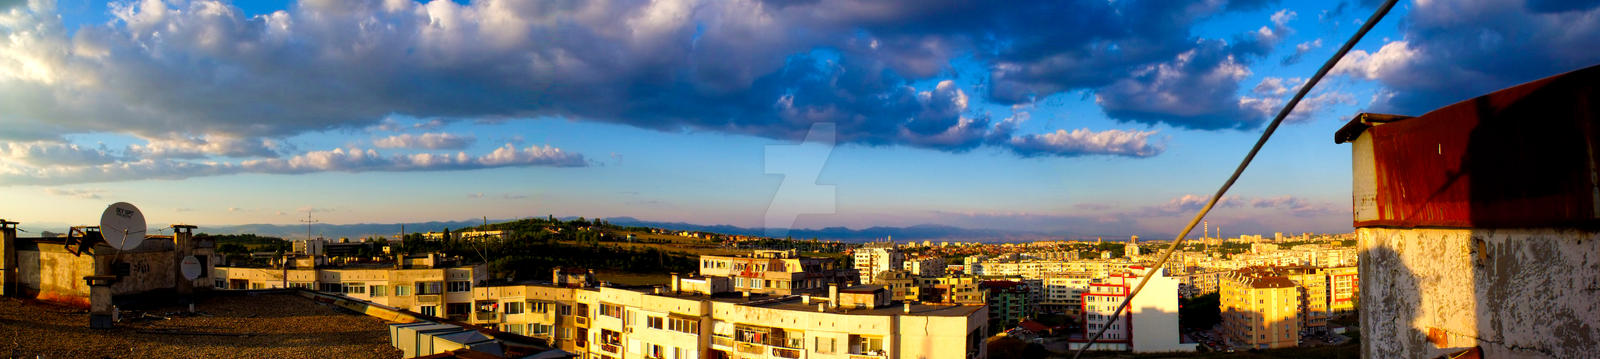 Panorama from my apartment block by Bozzenheim